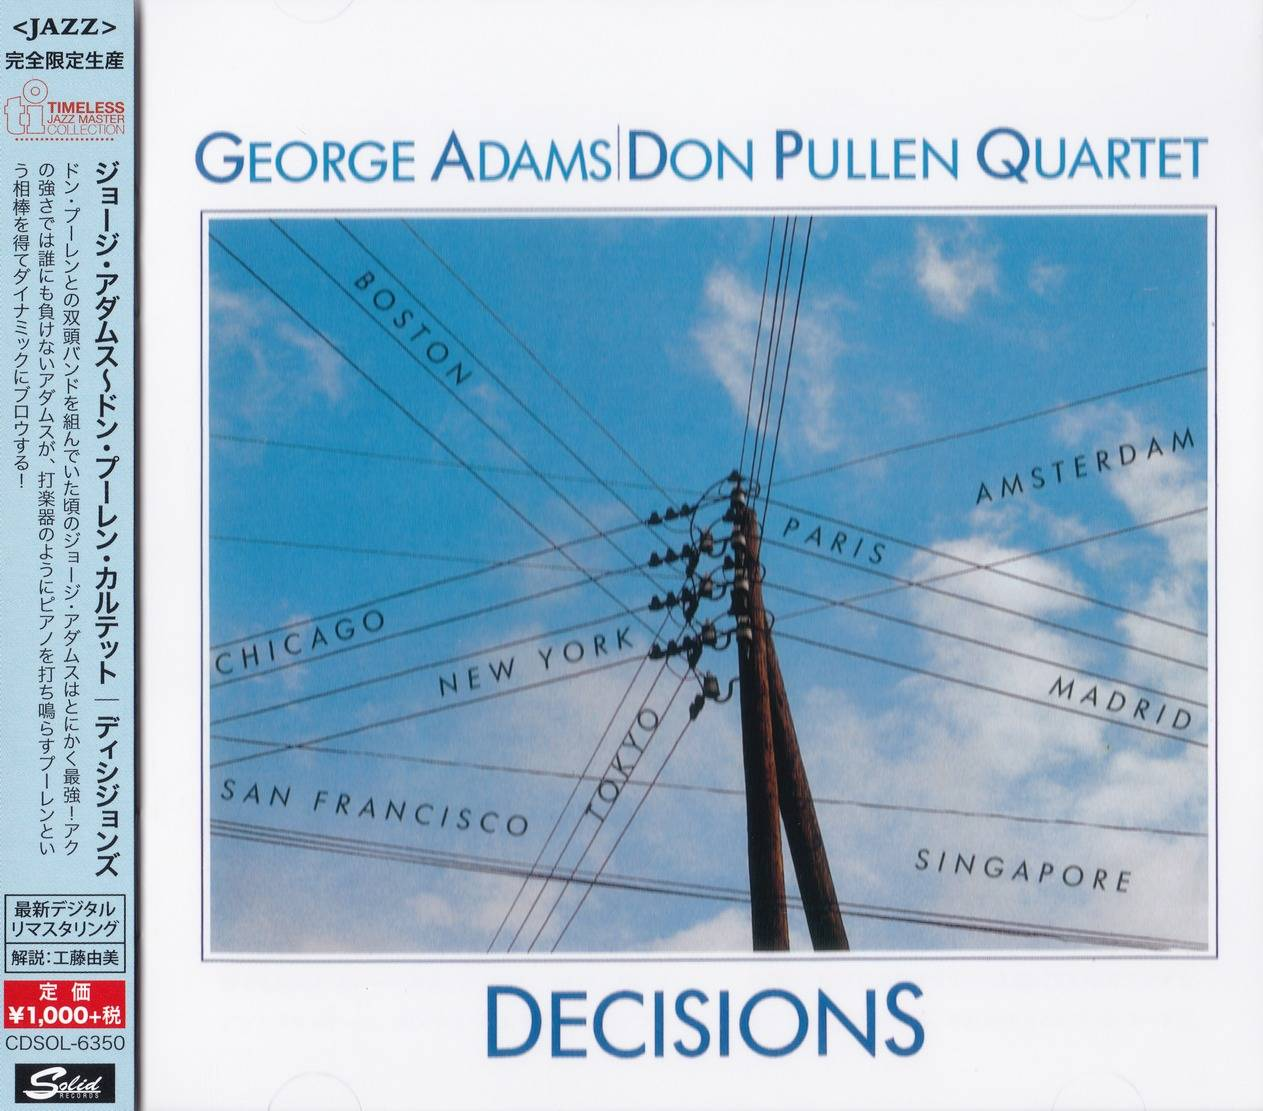 George Adams & Don Pullen Quartet - Decisions (1984) {2015 Japan Timeless Jazz Master Collection Complete Series CDSOL-6350}